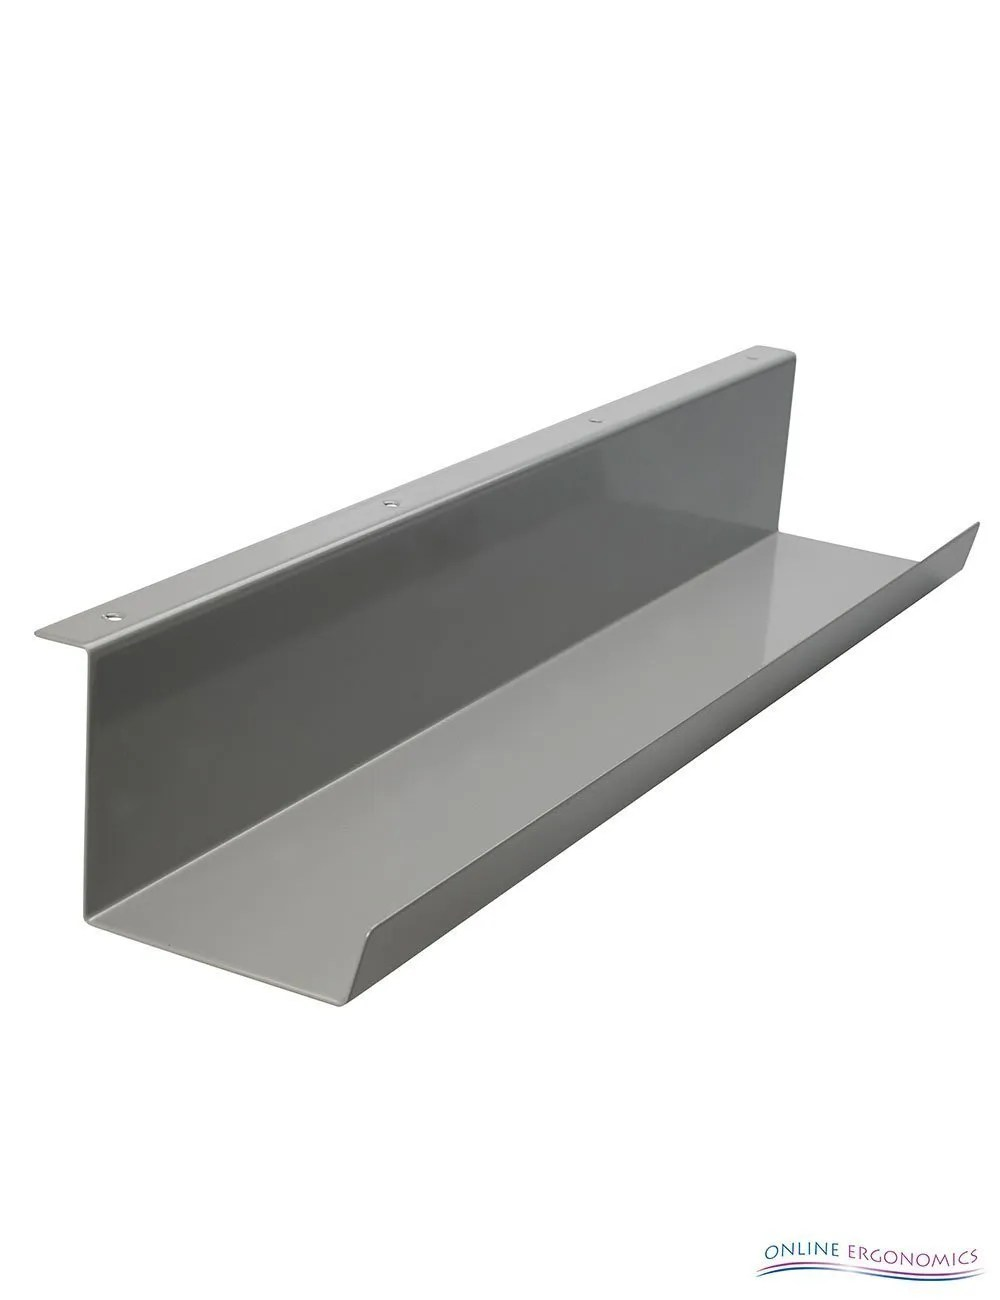 Steel Cable Tray 1100mm  Online Ergonomics